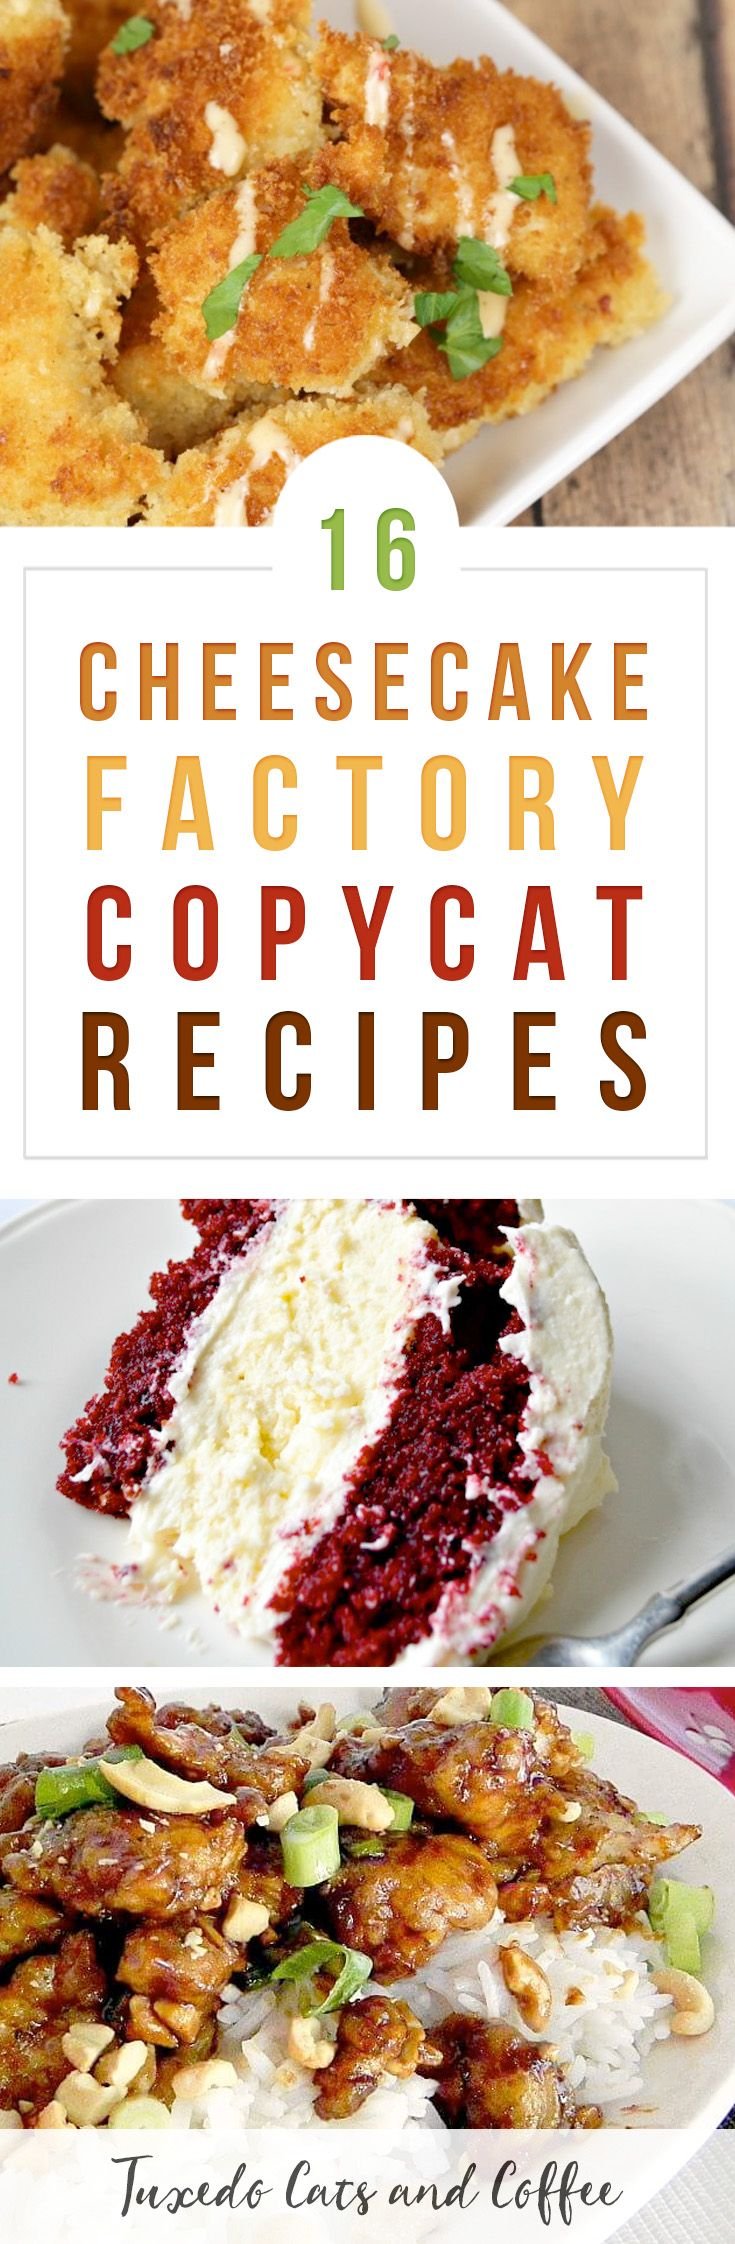 16+ Cheesecake Factory Copycat Recipes #favoriterecipes